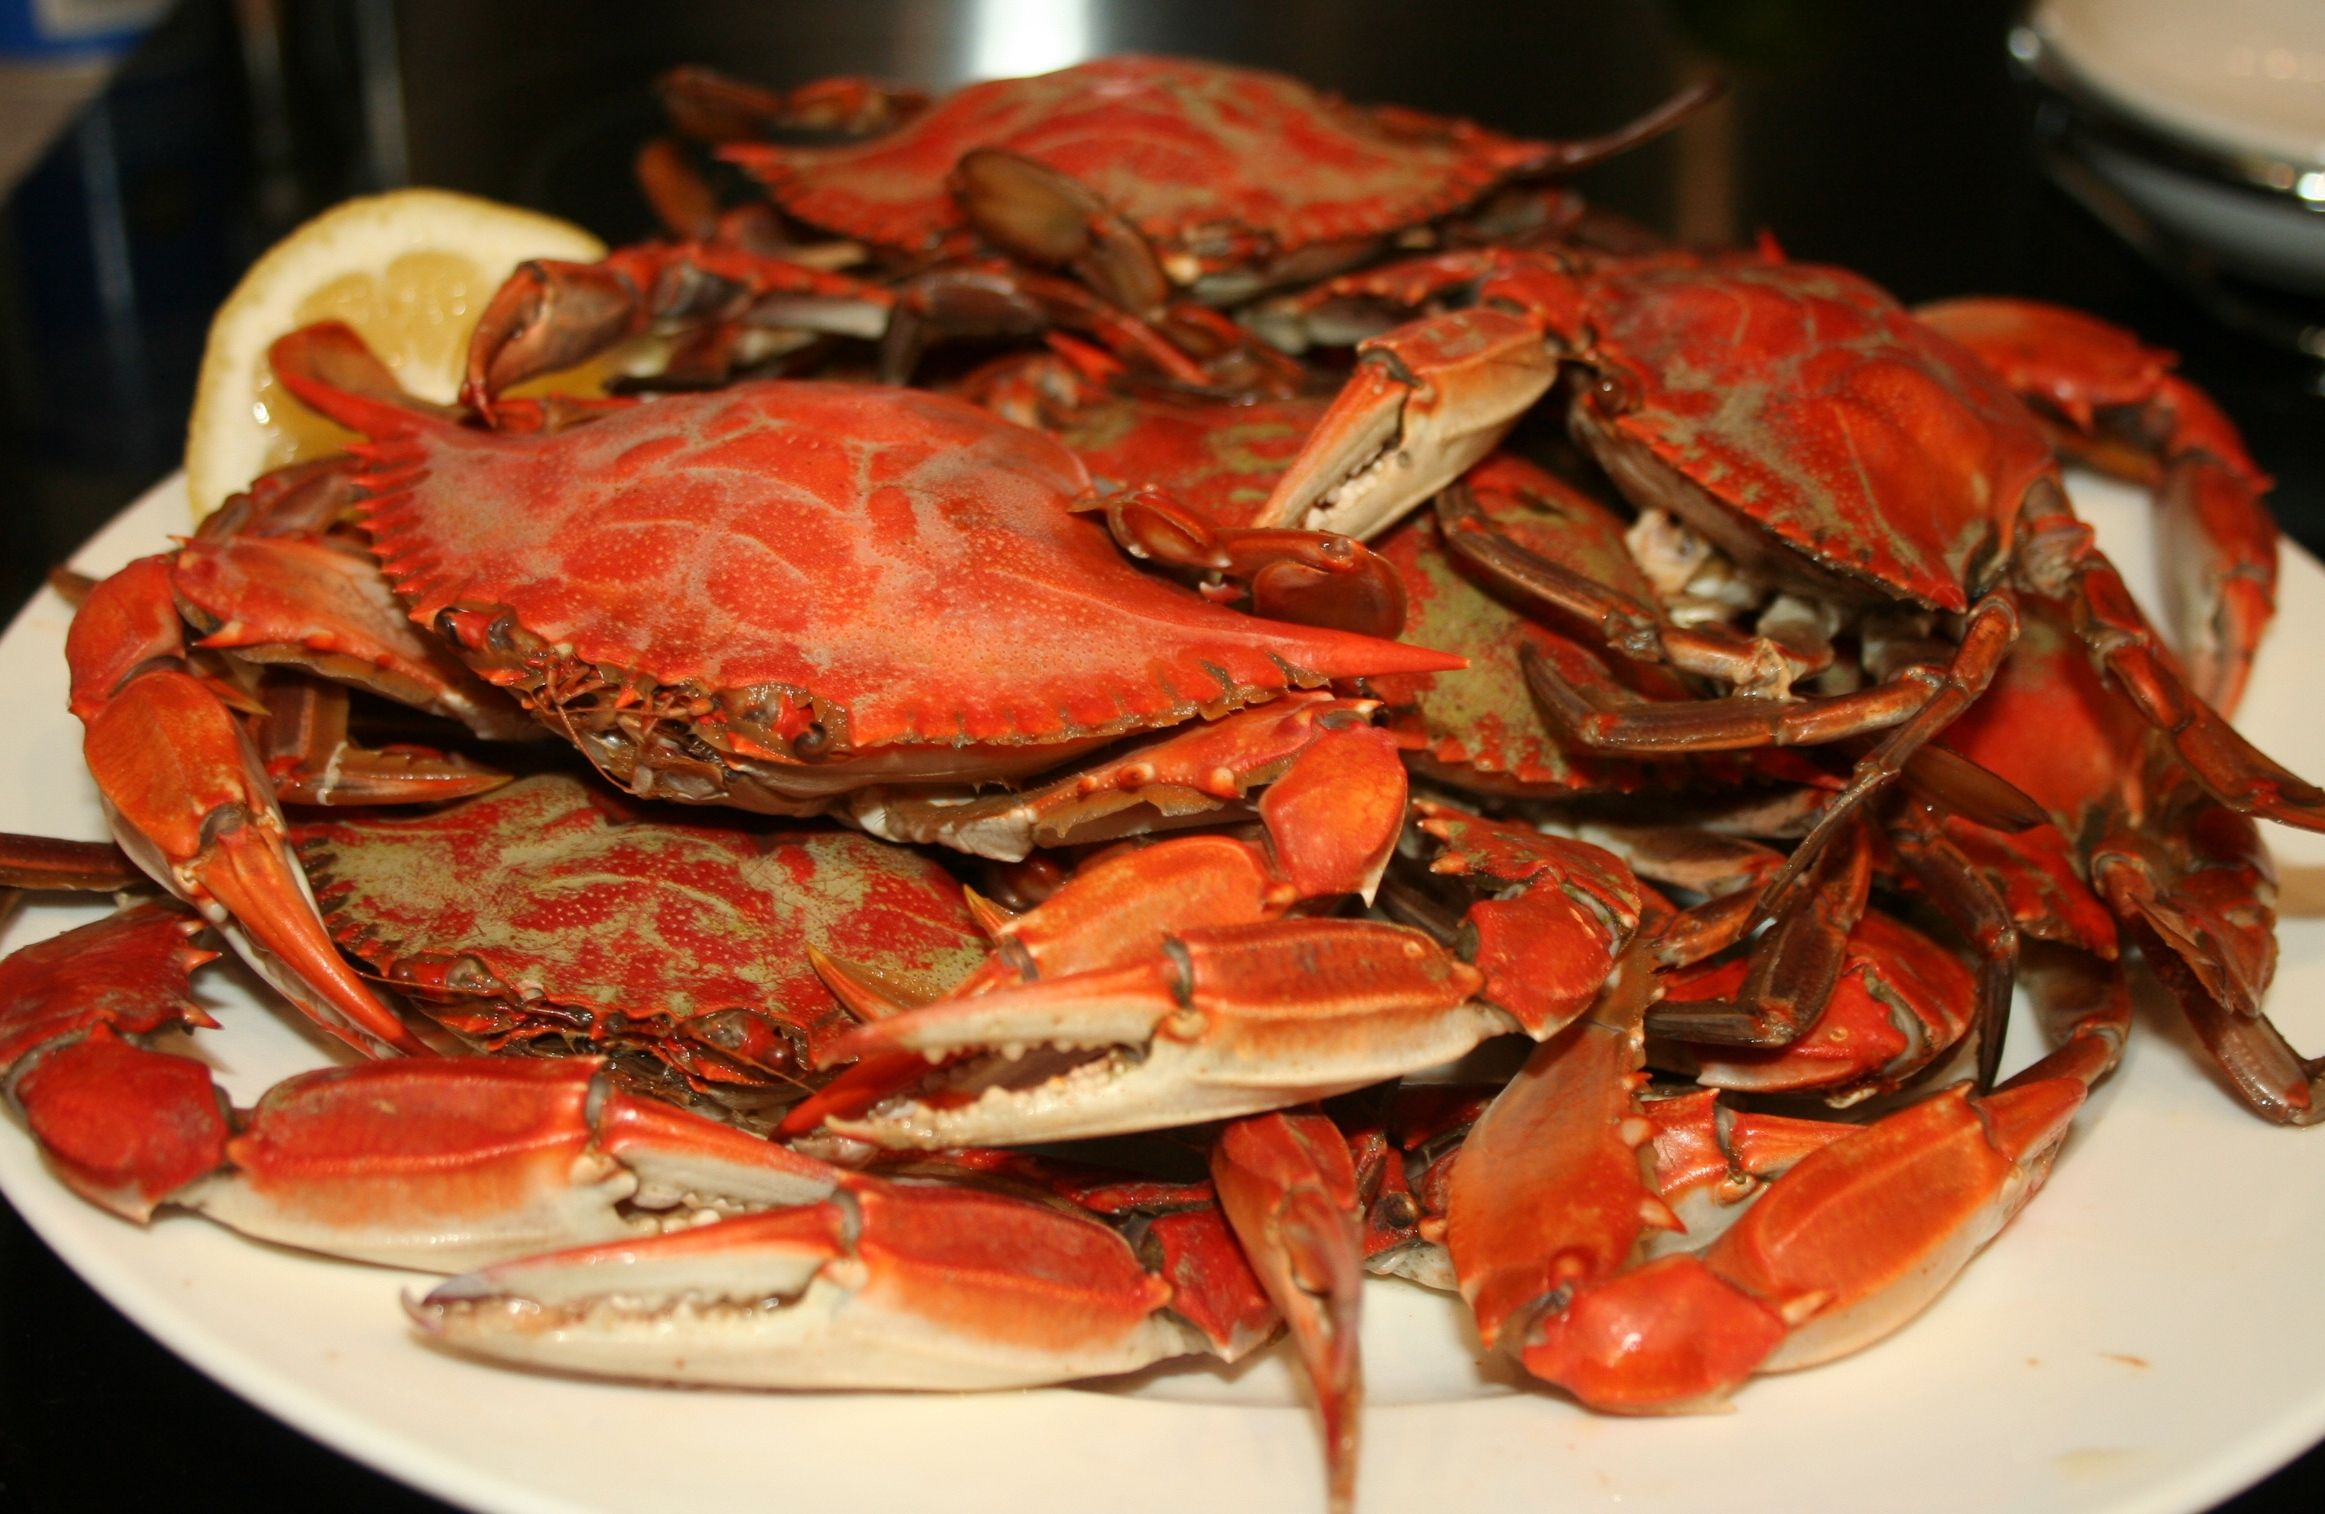 Boiled Blue Crab Seafood Platter Lobster Recipes Oyster Recipes